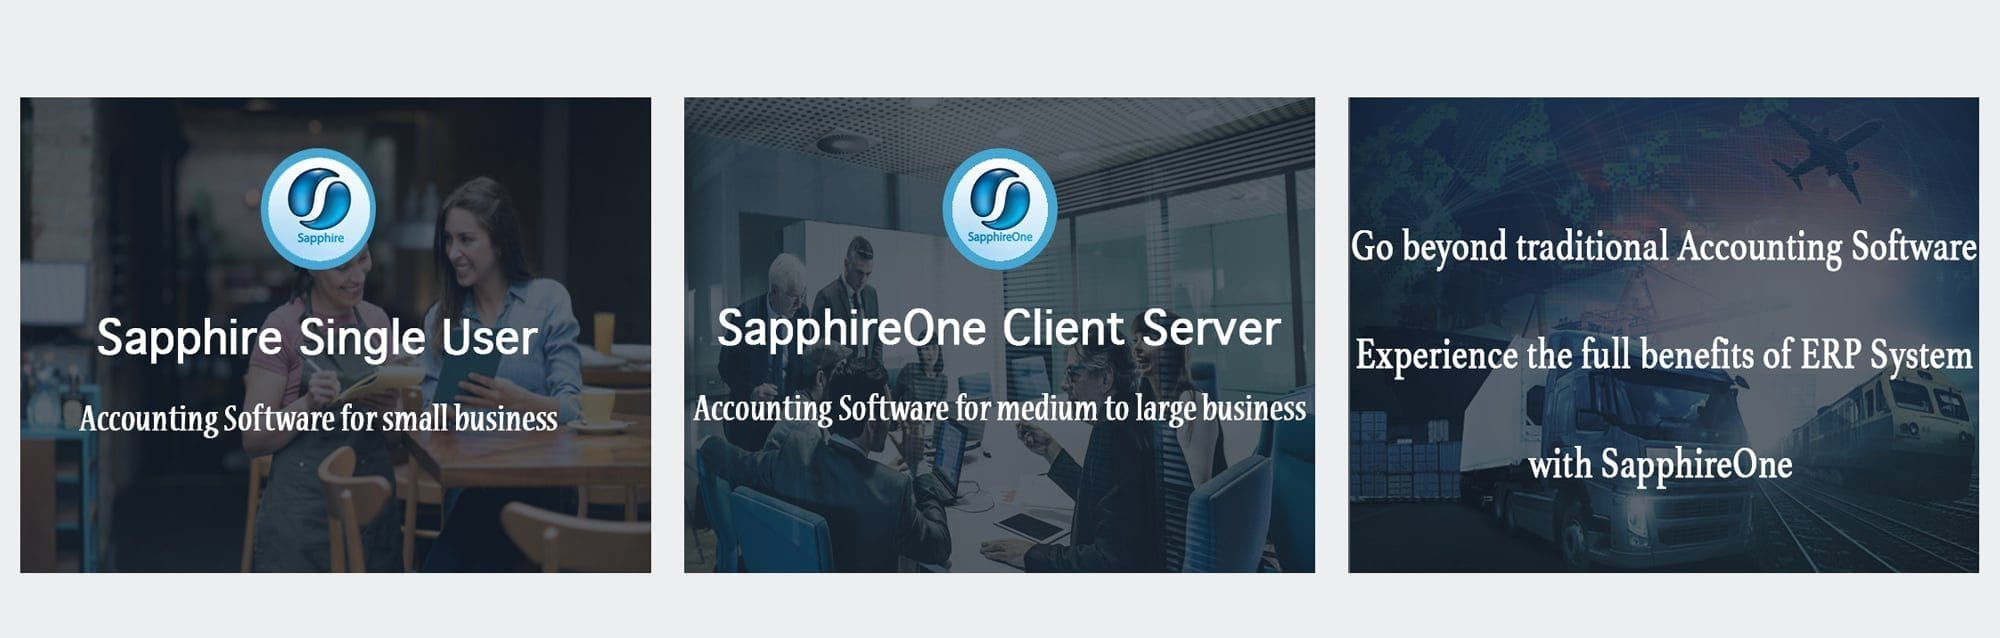 SapphireOne-ERP-Software-Solution-Australia-2017